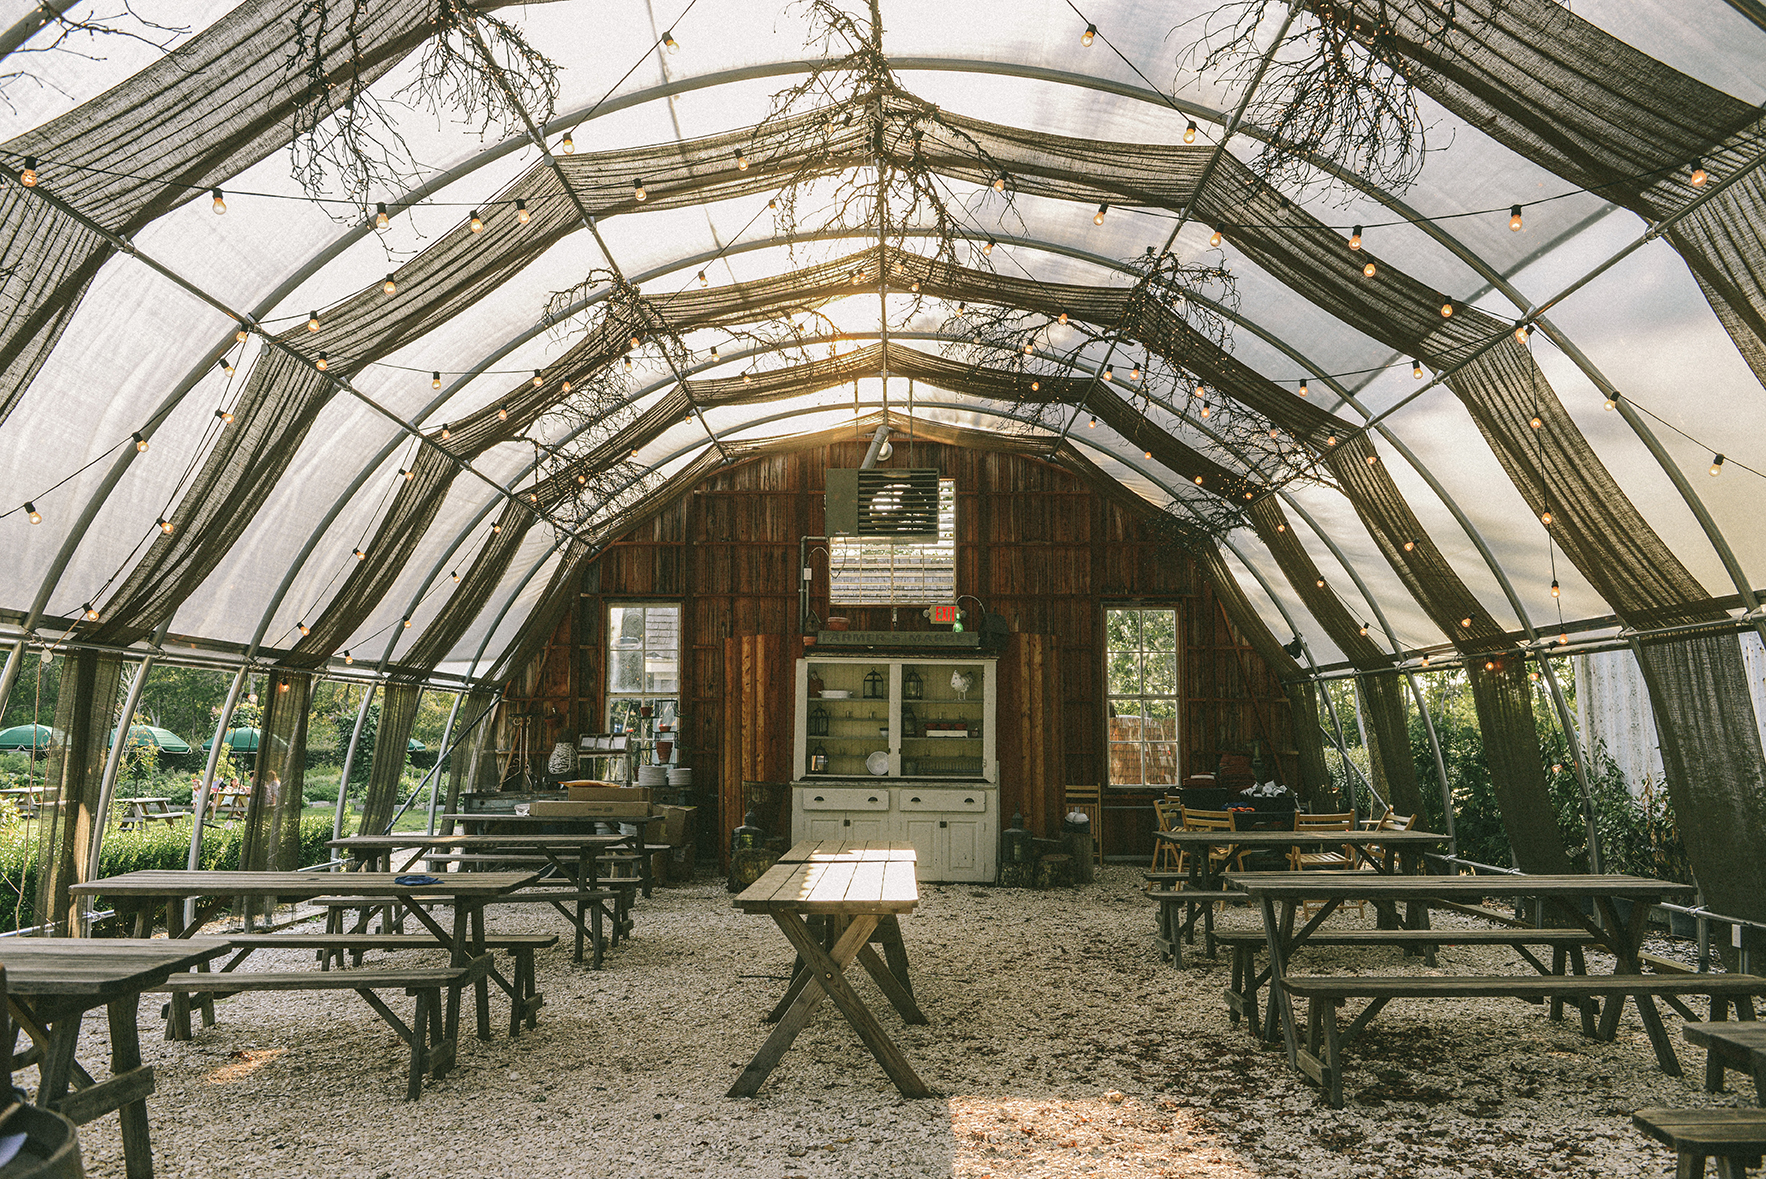 Beach Plum Farm in Cape May, NJ (ie: The Dreamiest Greenhouse Ever)